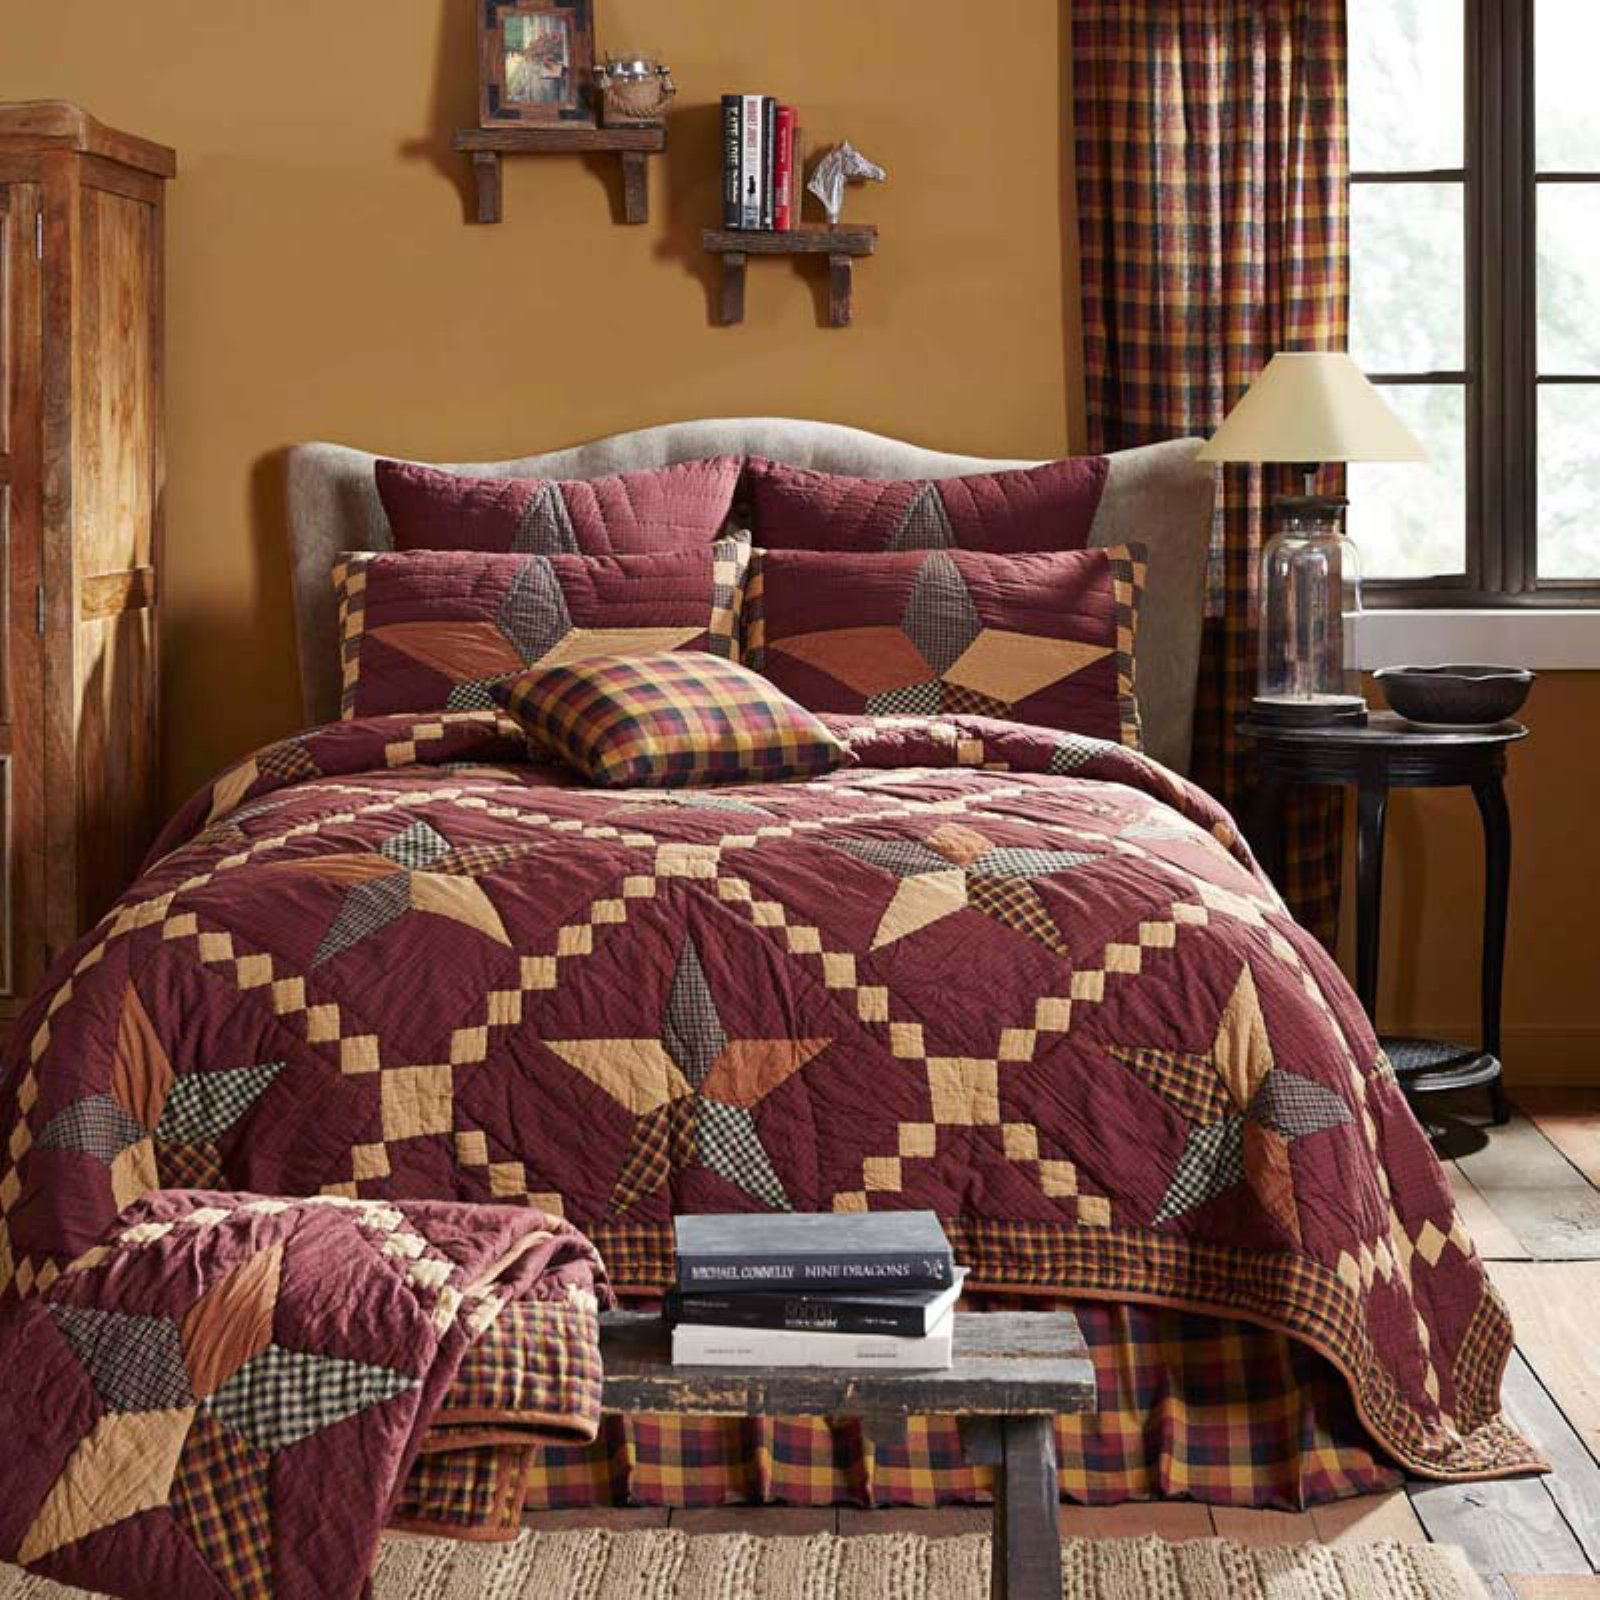 Folkways Star Quilt by VHC Brands